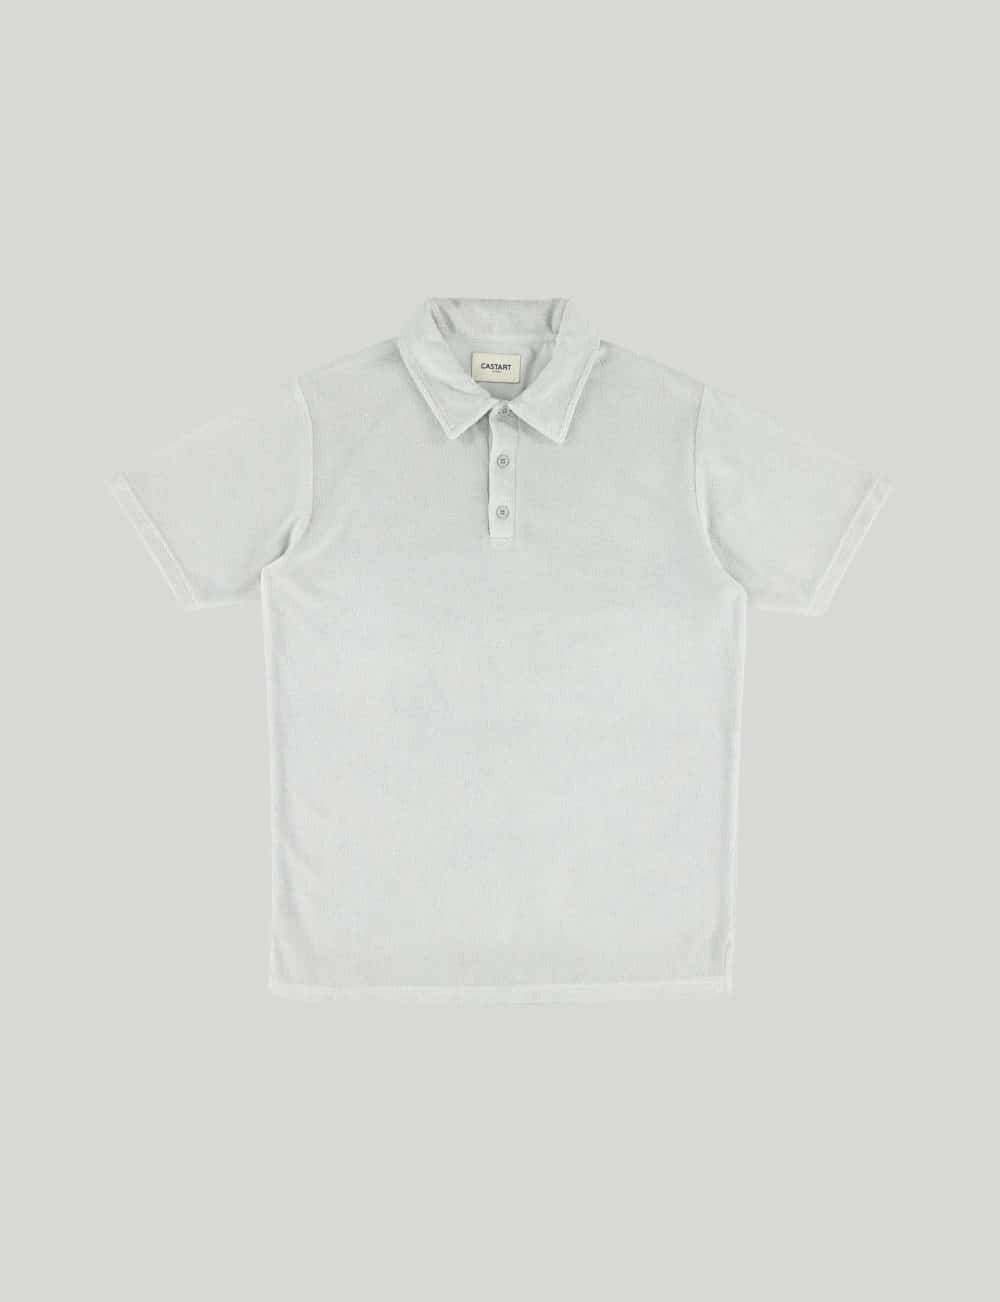 Castart - Seaford polo tee - Middle Grey